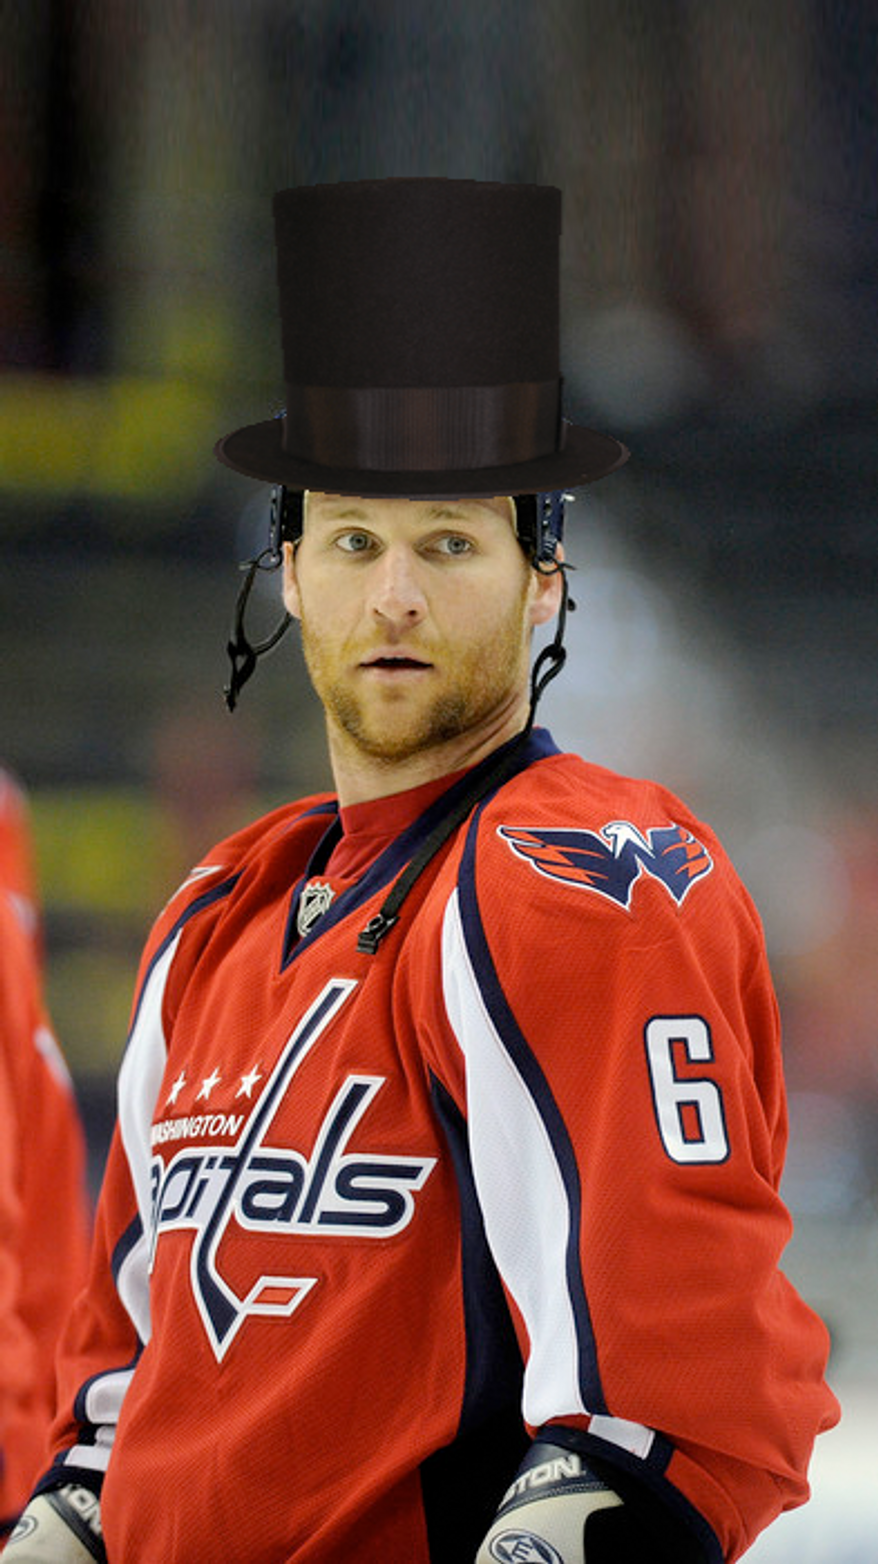 Dennis Wideman as Abraham Lincoln photoshop No. 5 by @golbeck.